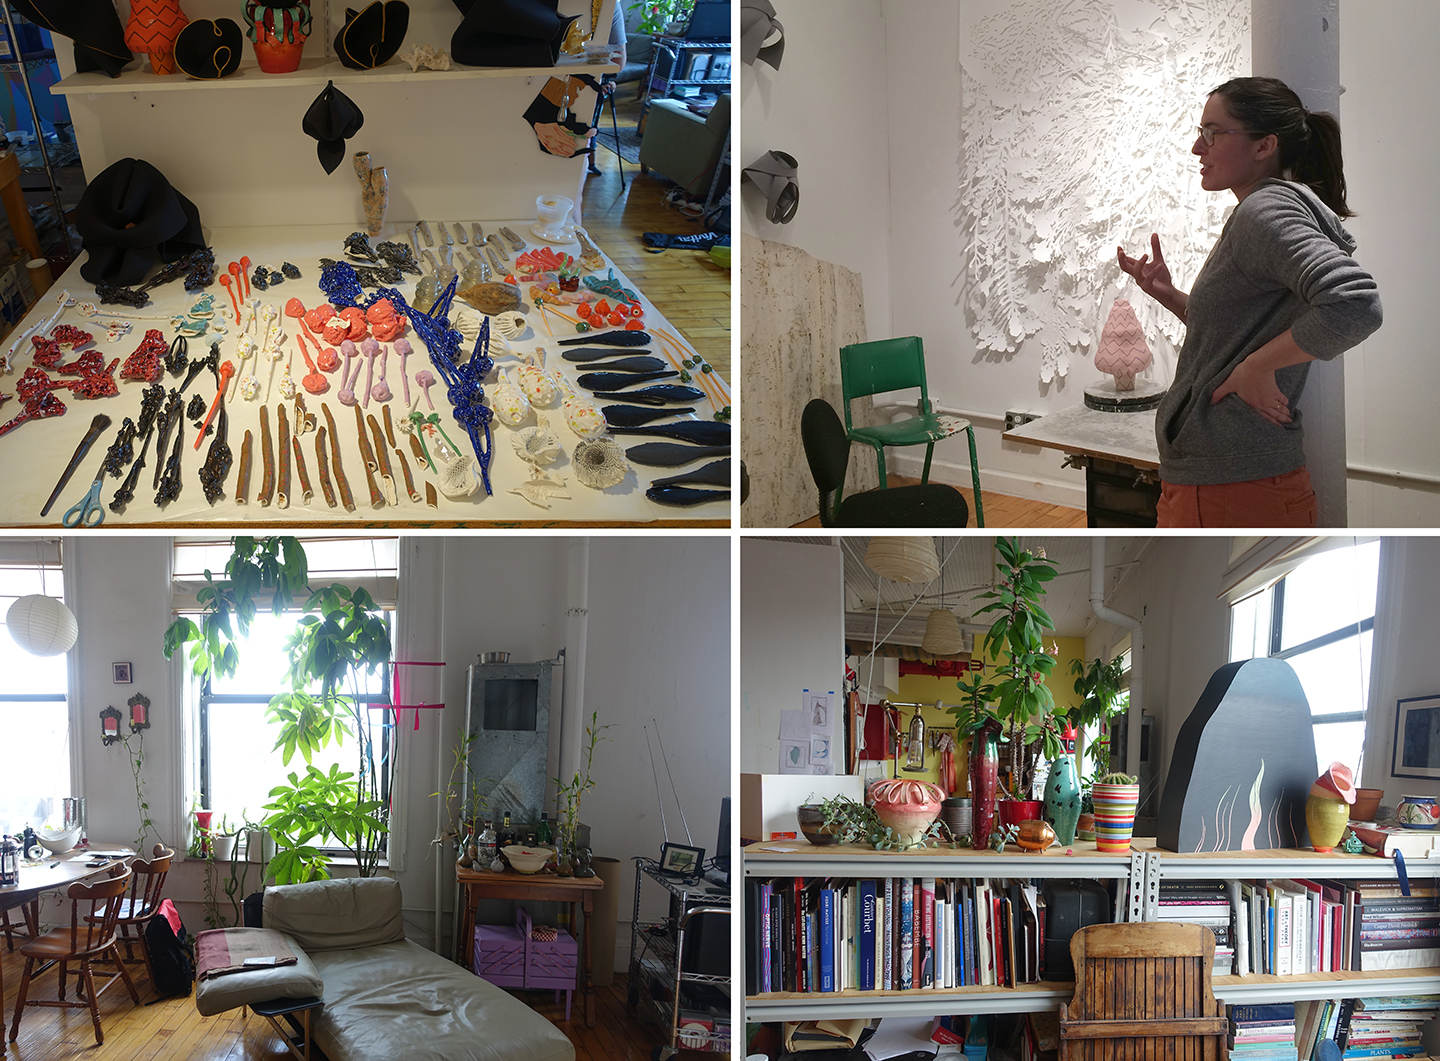 Shots from the artist's live and work space in Brooklyn, New York. All images are copyrighted